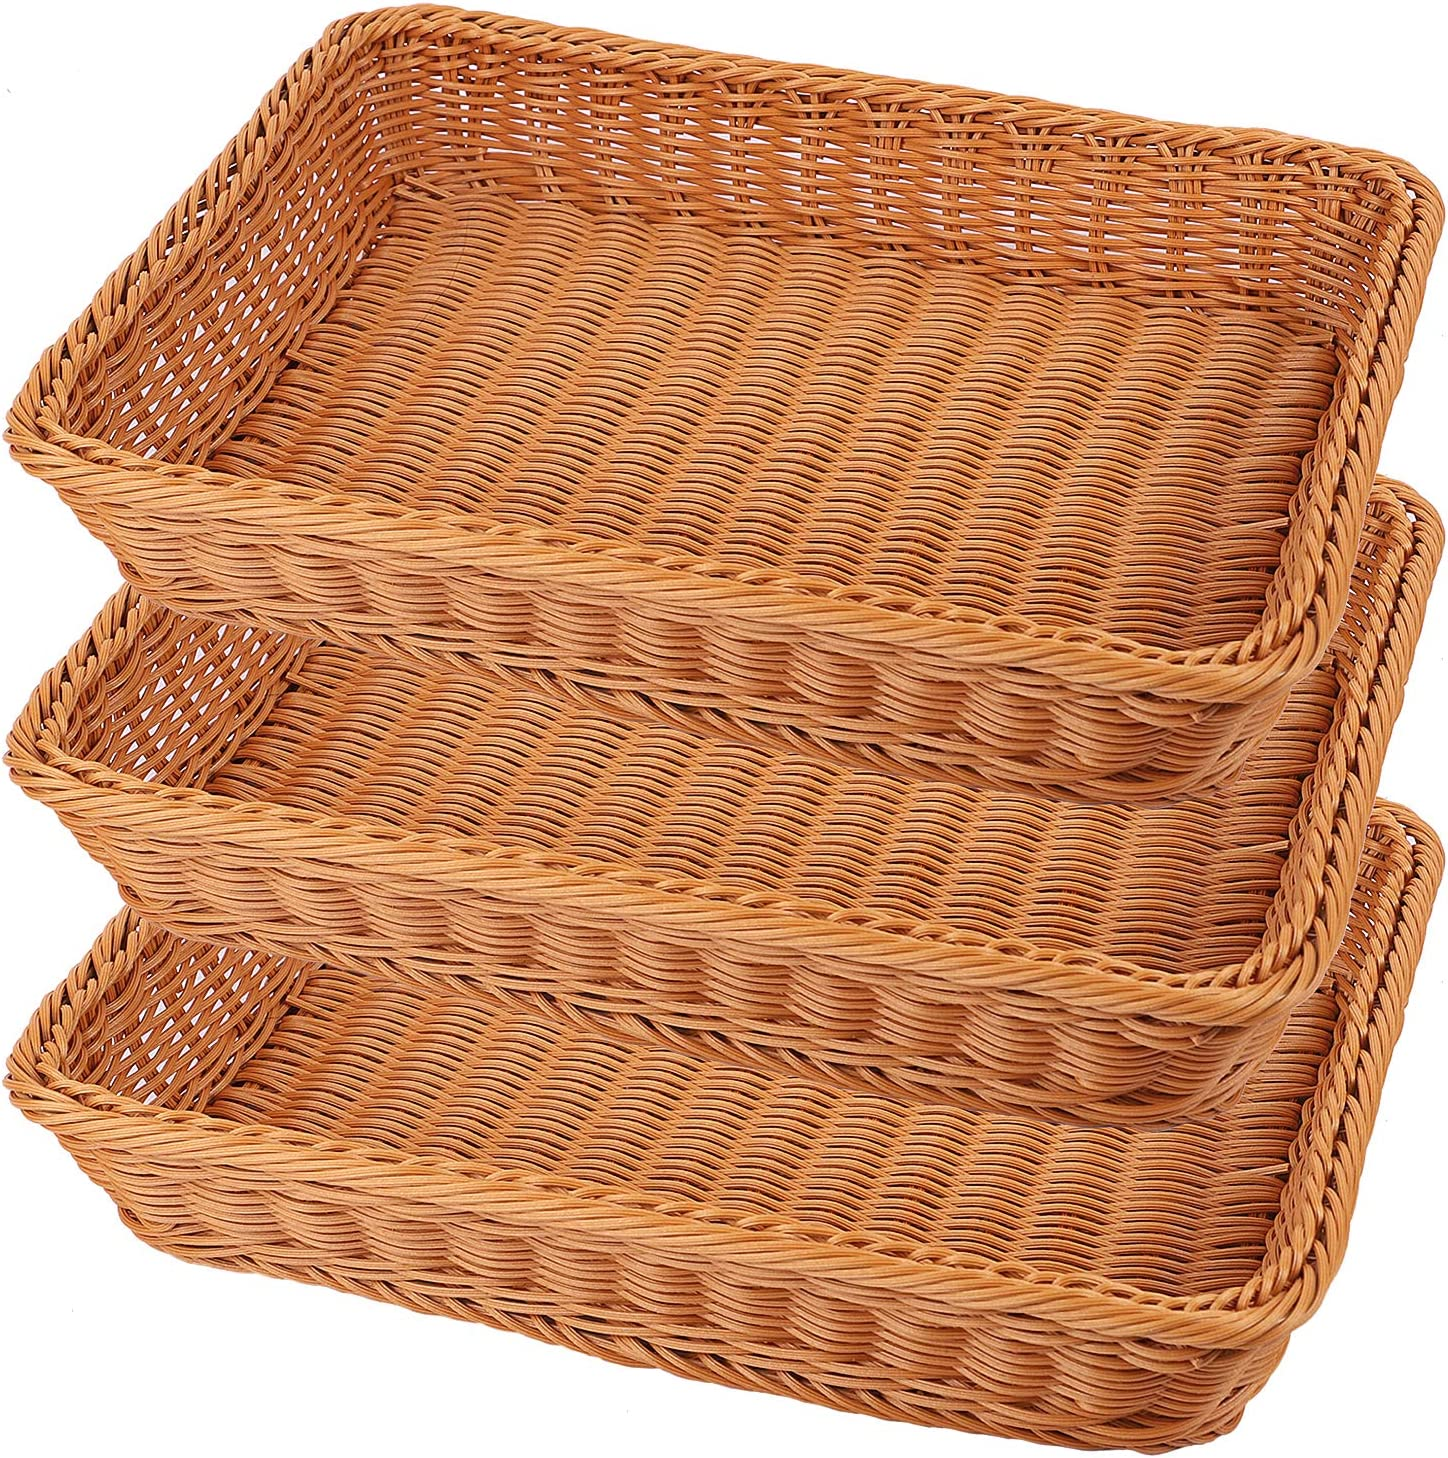 KEILEOHO 3 Packs 16 Inch Poly Wicker Bread Baskets, Handmade Woven Pantry Organizer, Tabletop Food Serving Baskets for Fruits, Vegetables and Snacks, Restaurant, Hotel Serving, Brown